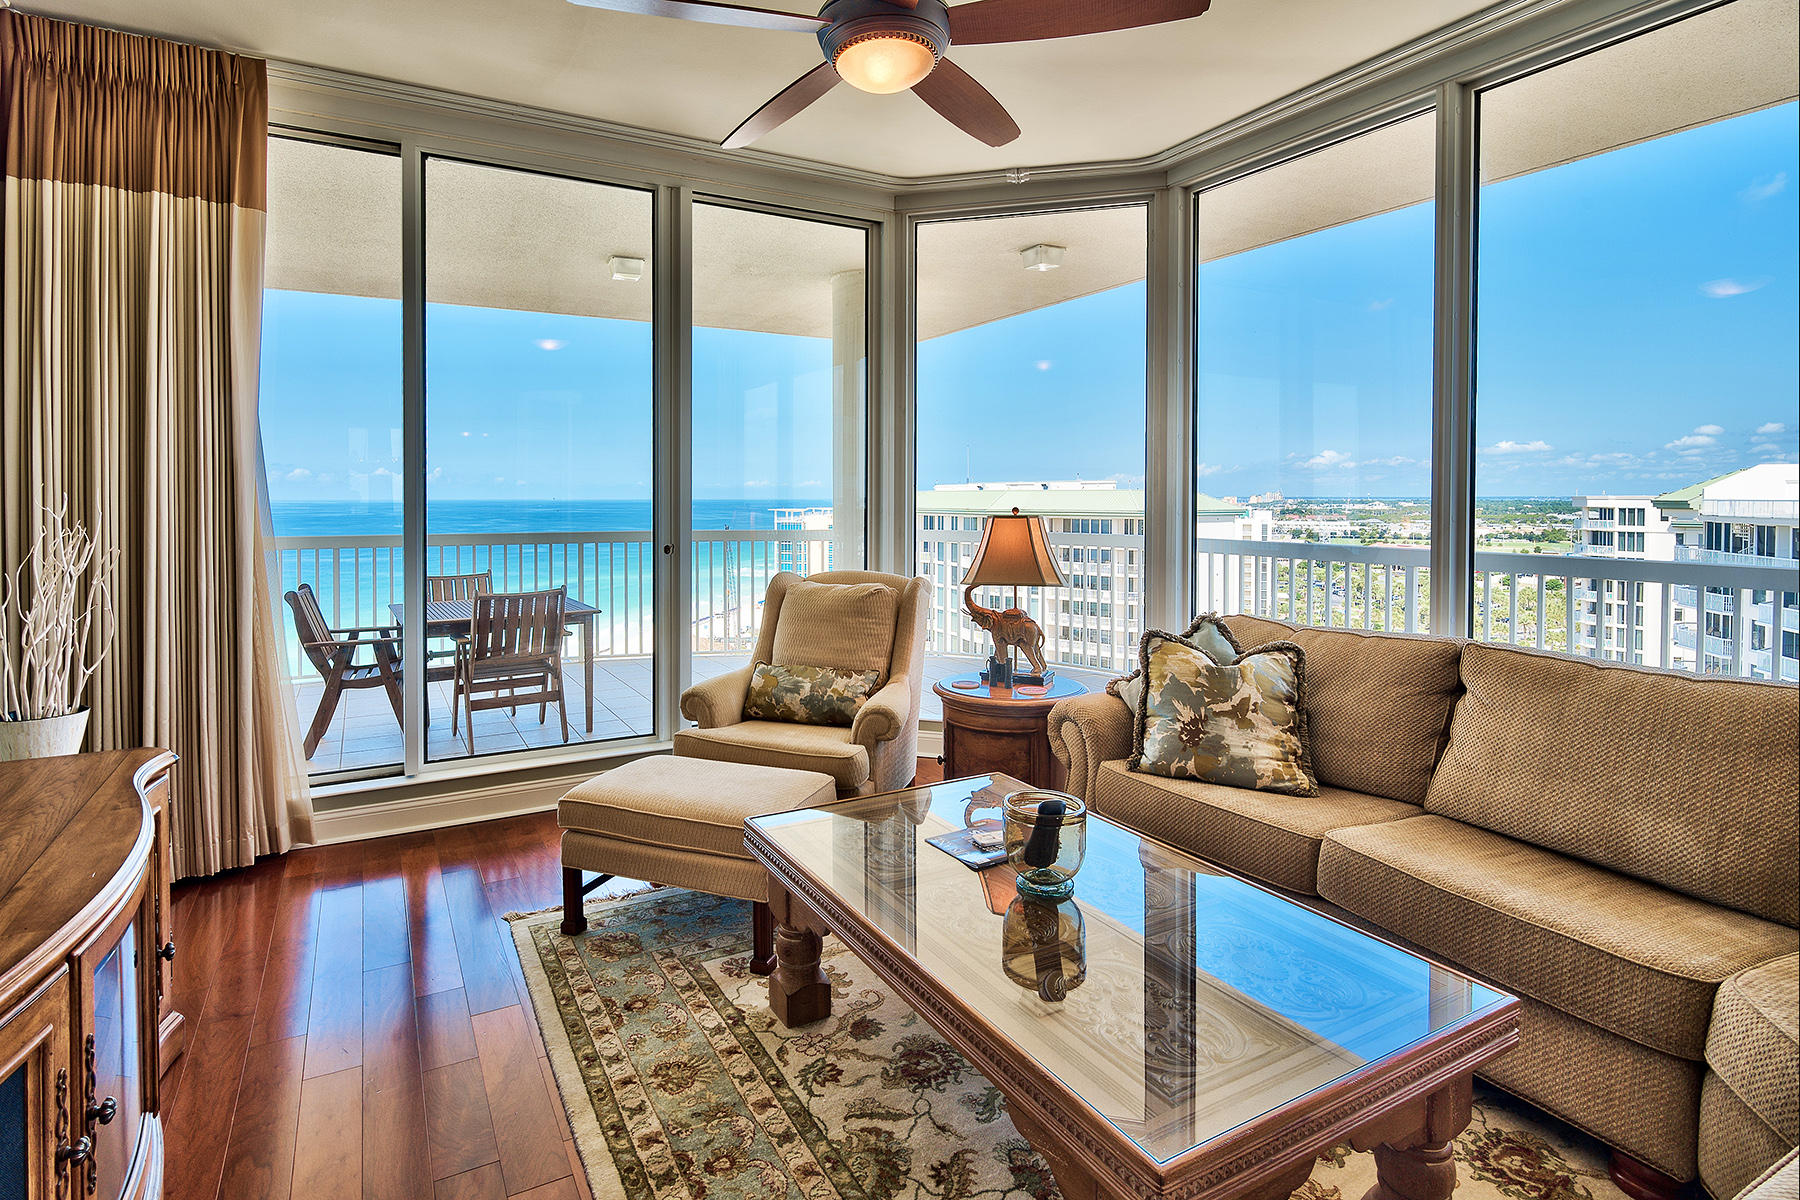 Copropriété pour l Vente à Corner Penthouse With Unsurpassed Gulf Views 15400 Emerald Coast Parkway PH8A Destin, Florida, 32541 États-Unis